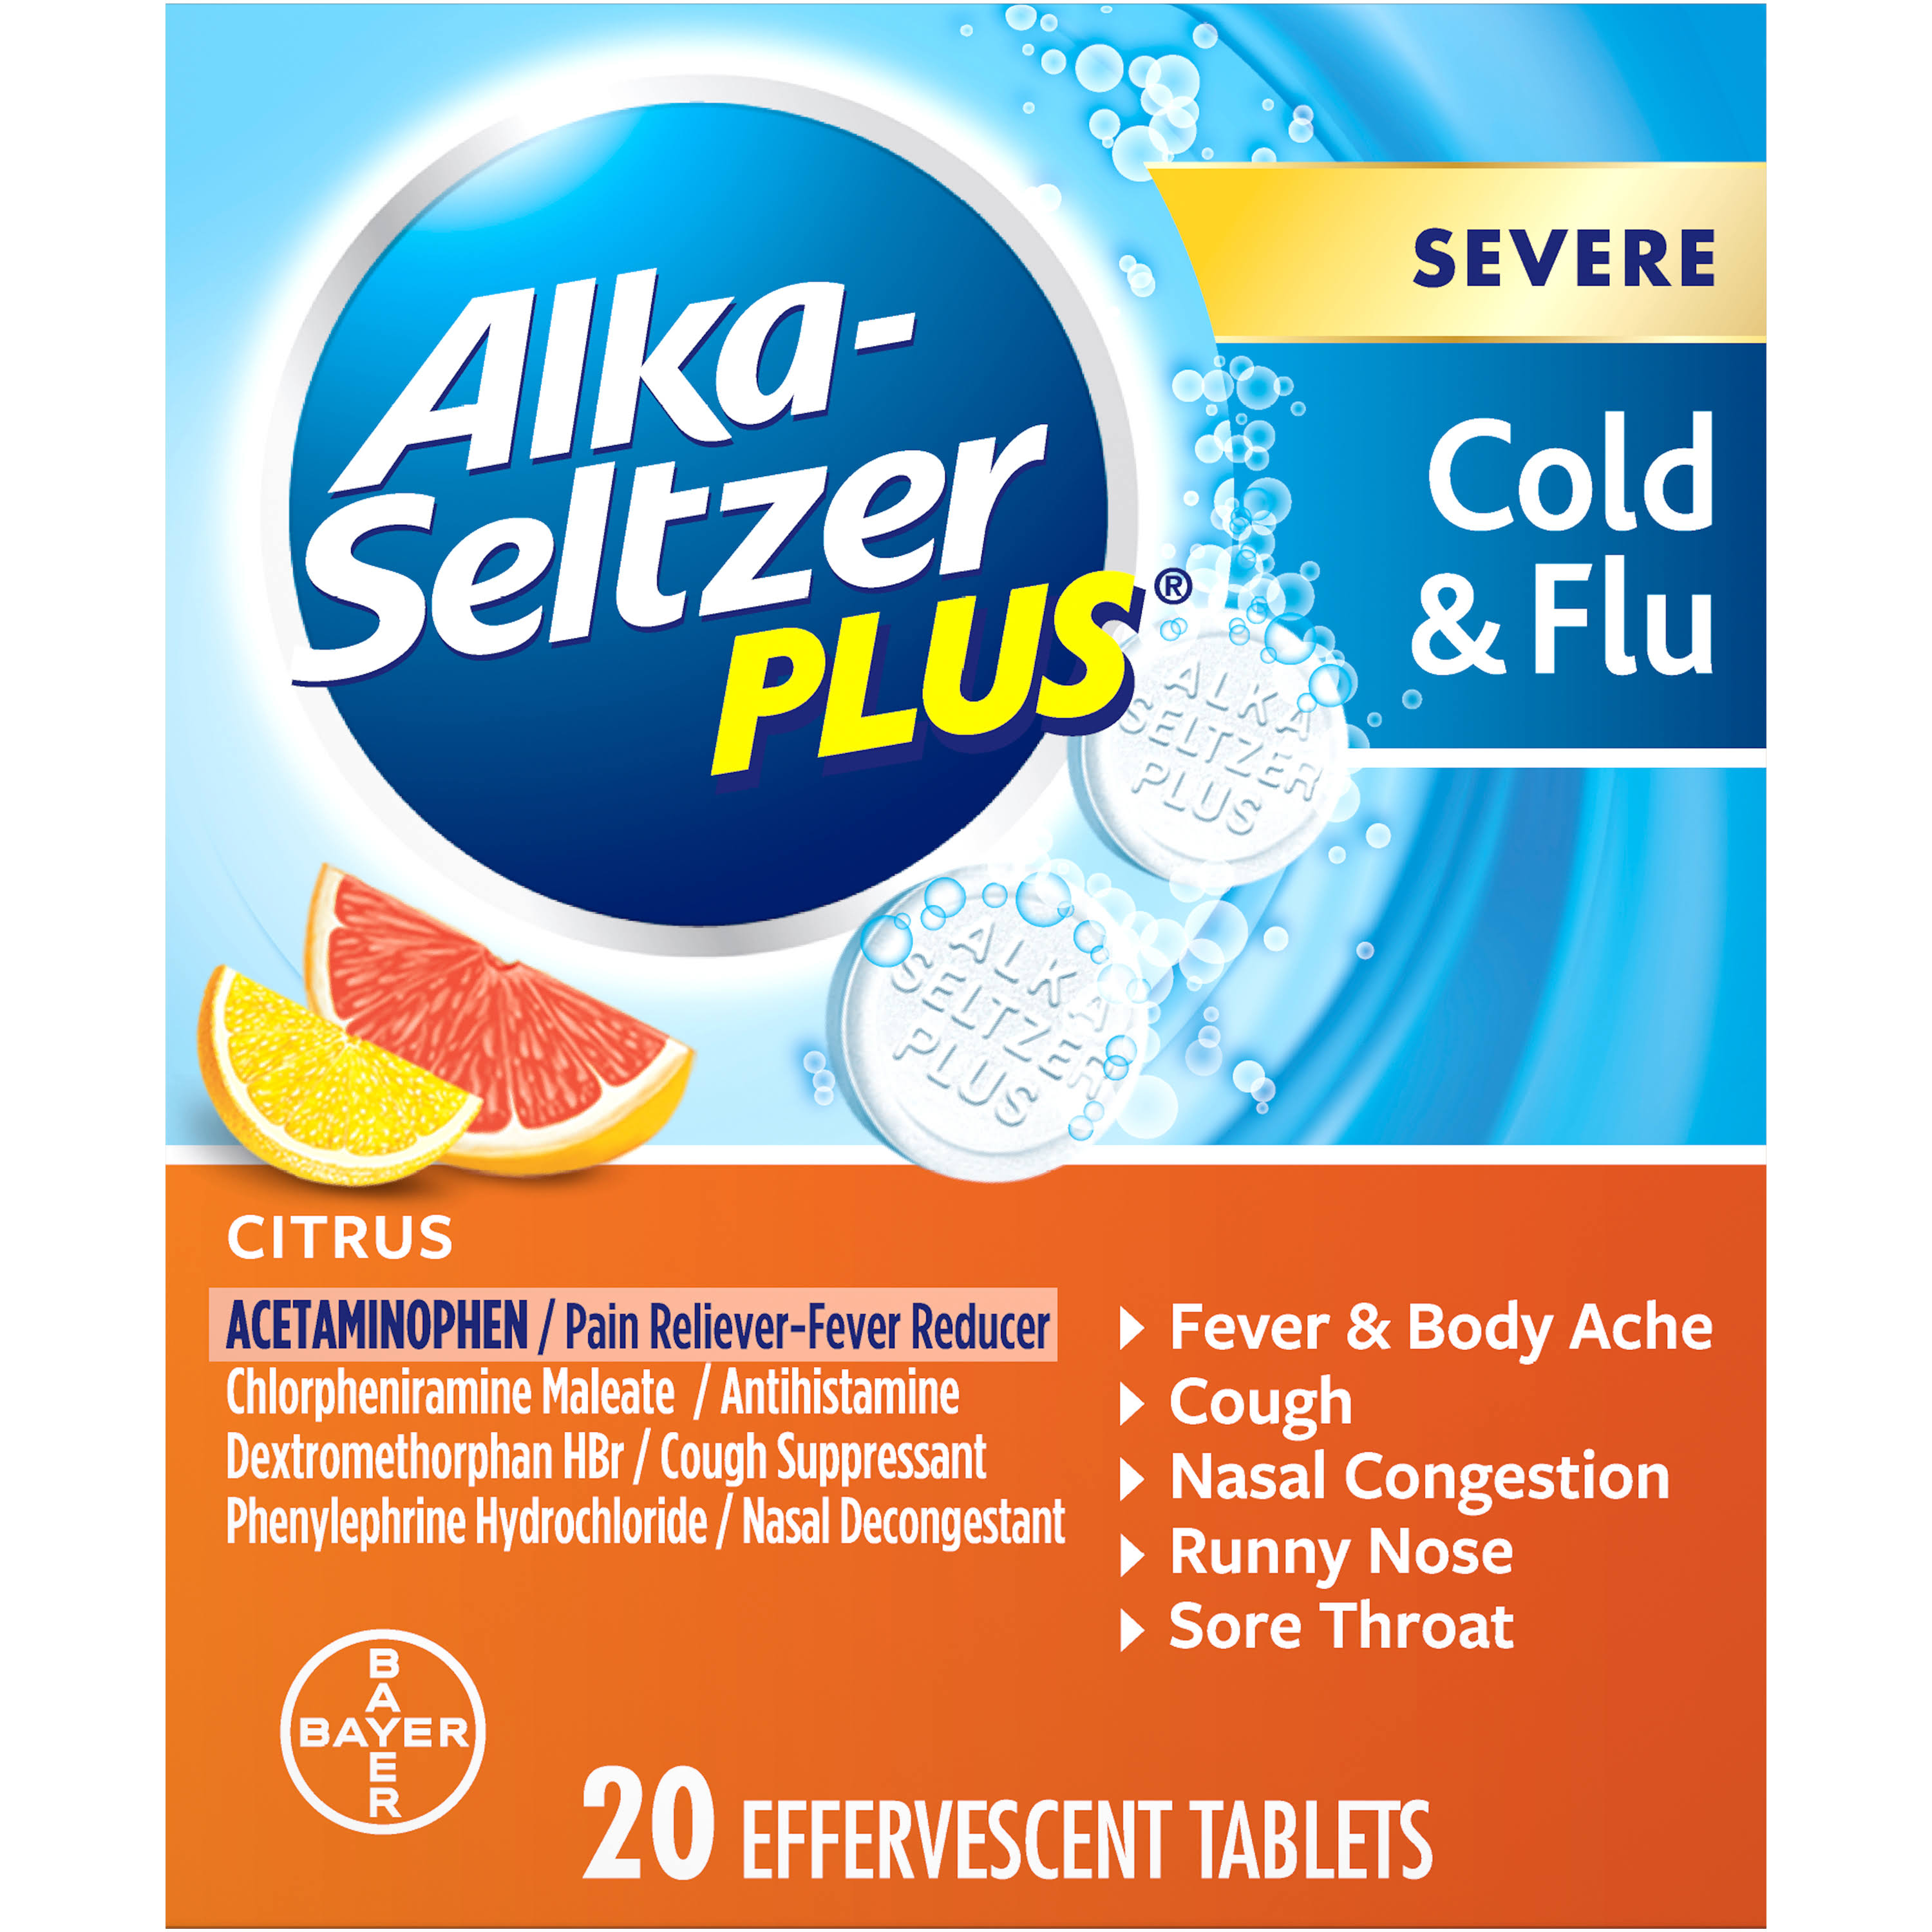 Alka-Seltzer Plus Severe Cold & Flu Effervescent Tablet - Citrus, 20ct